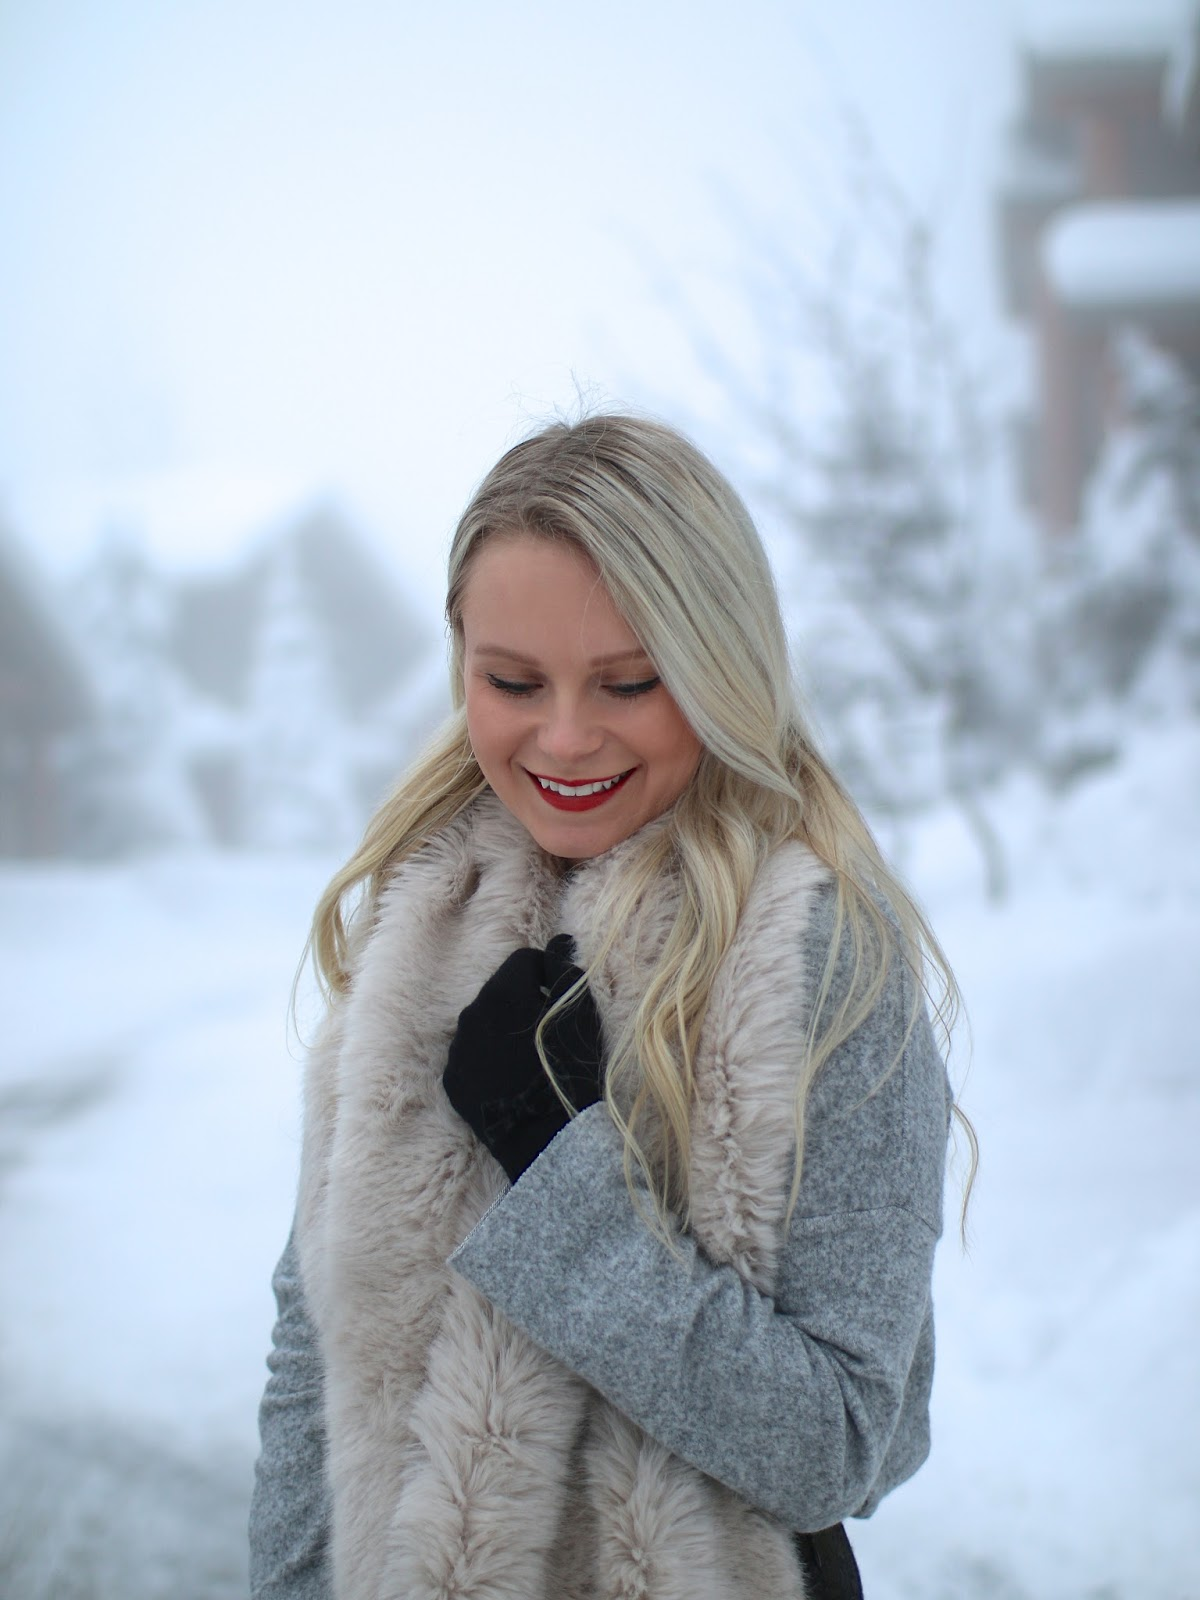 a blonde women having fun in the snow, dressed in an elegant outfit and faux fur scarf from zara